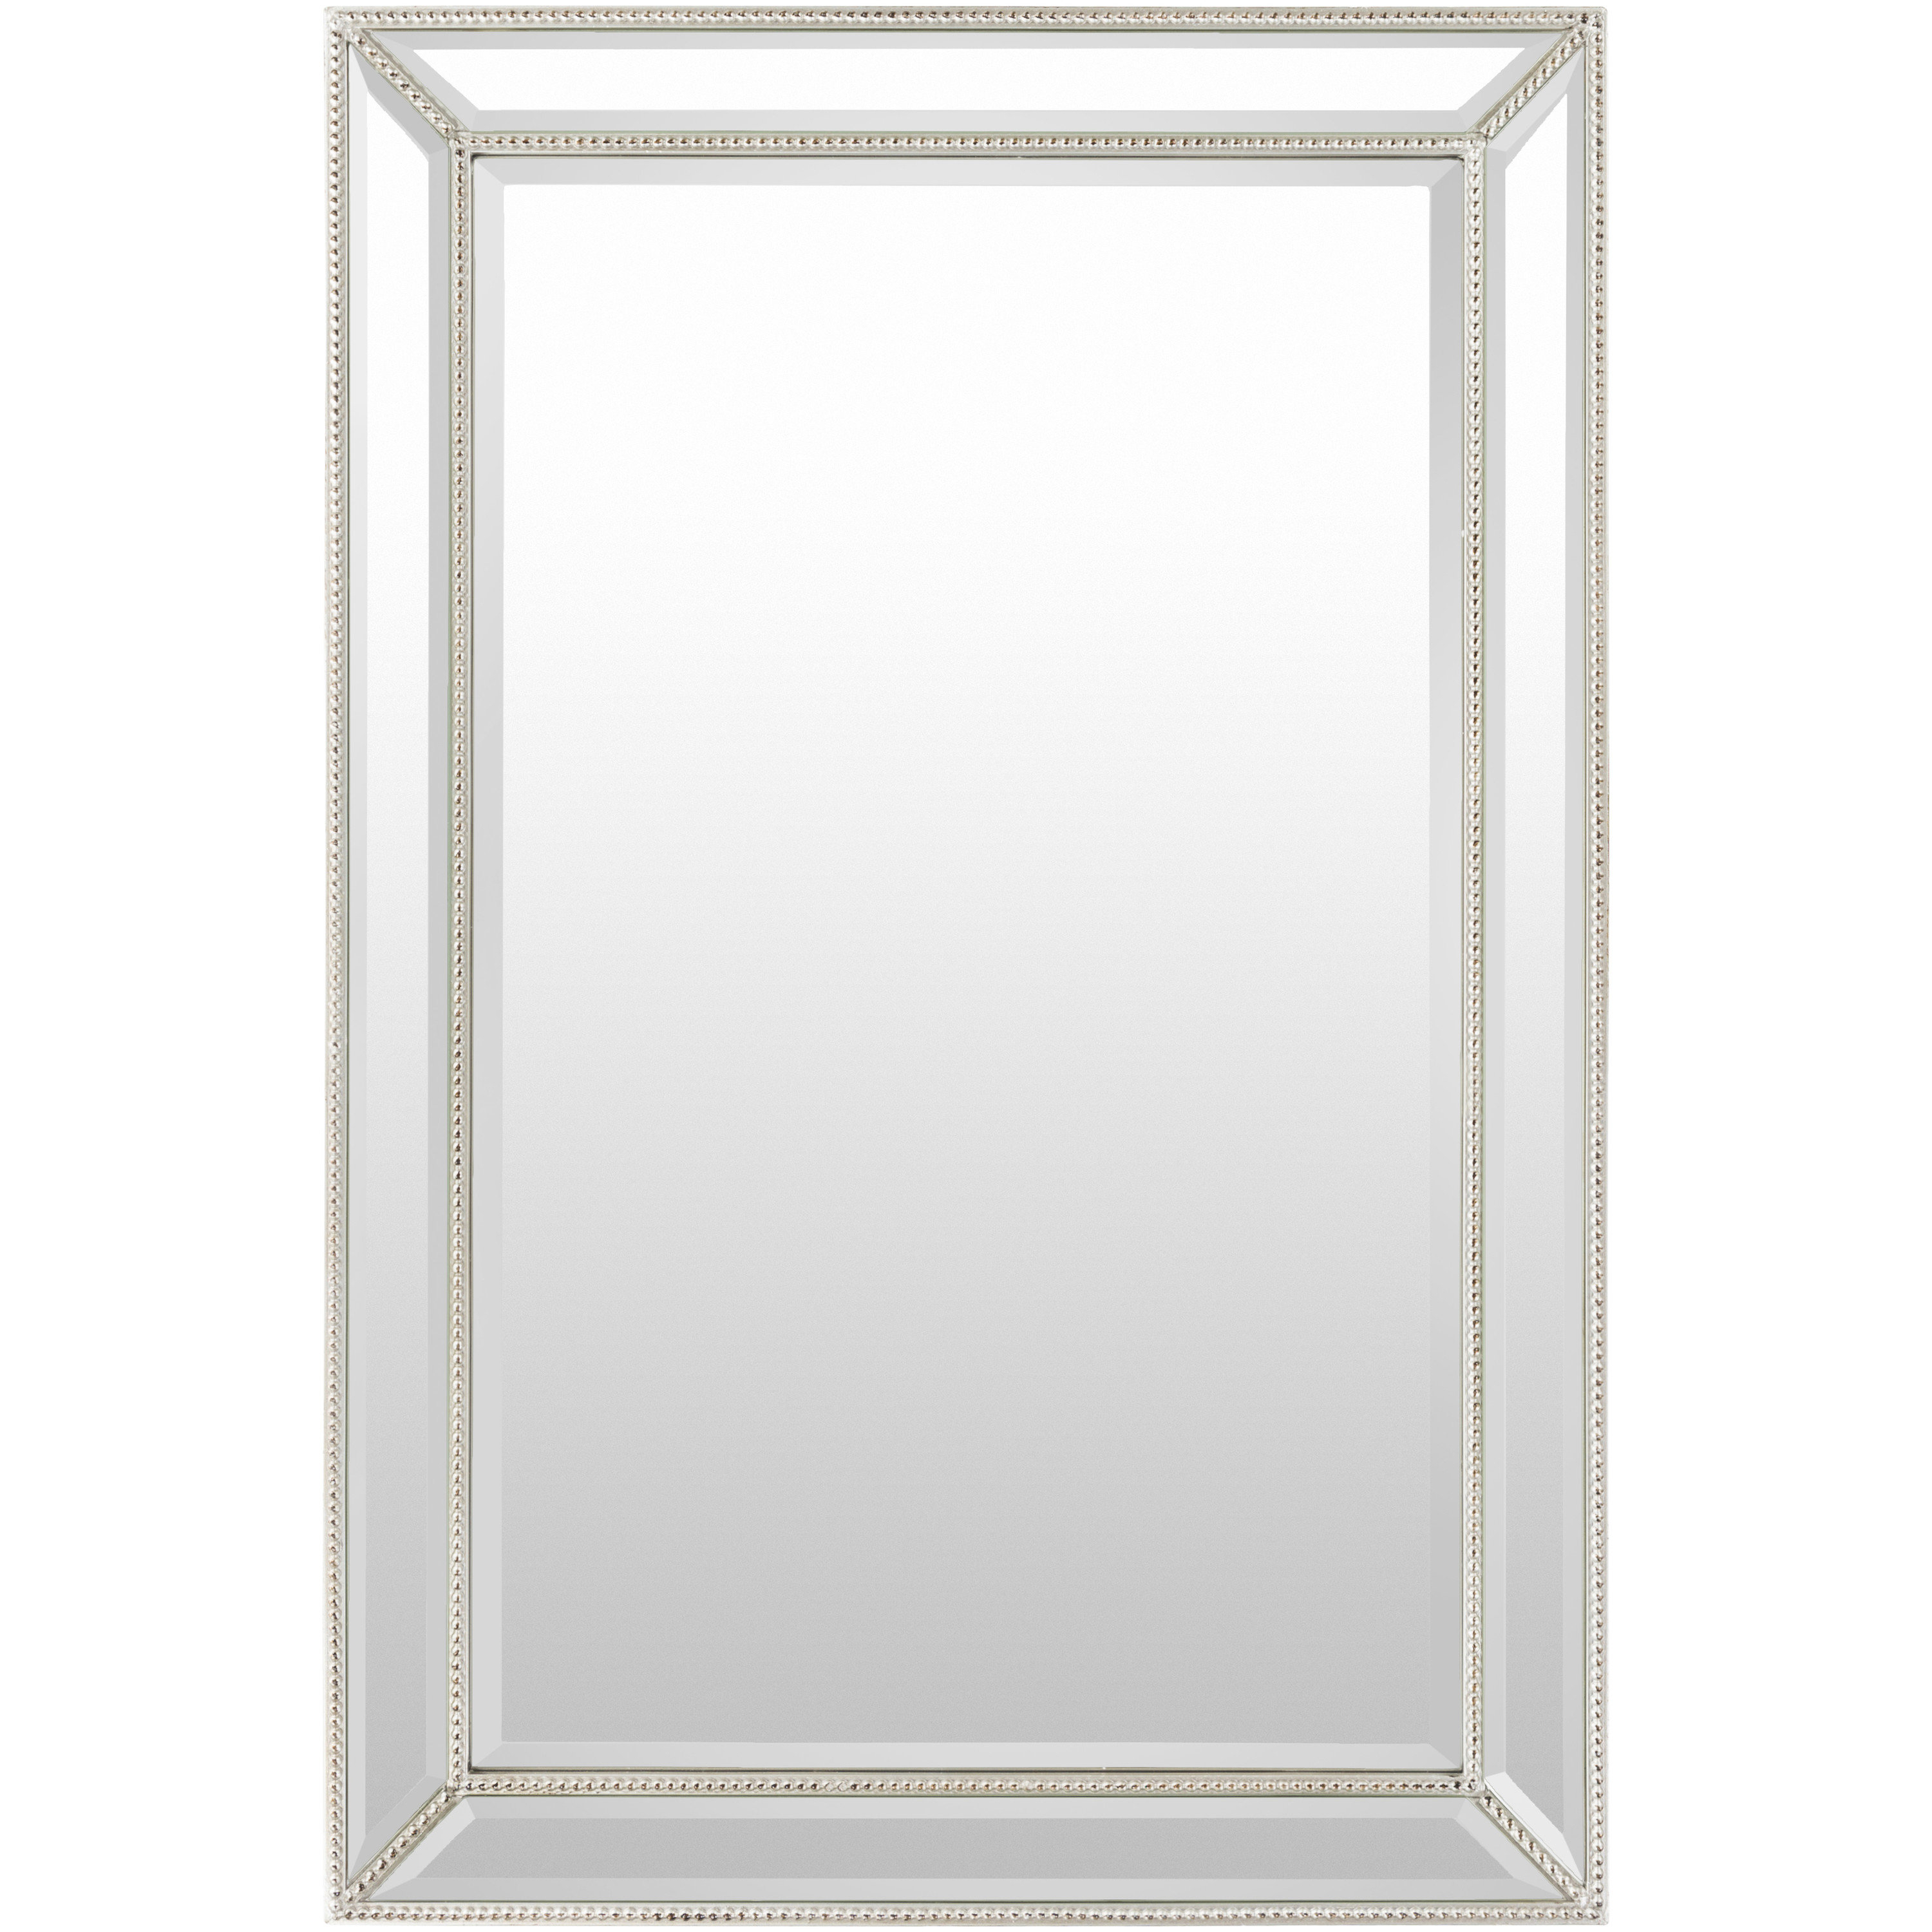 Preferred Darby Home Co Tutuala Traditional Beveled Accent Mirror With Traditional Beveled Accent Mirrors (View 17 of 20)